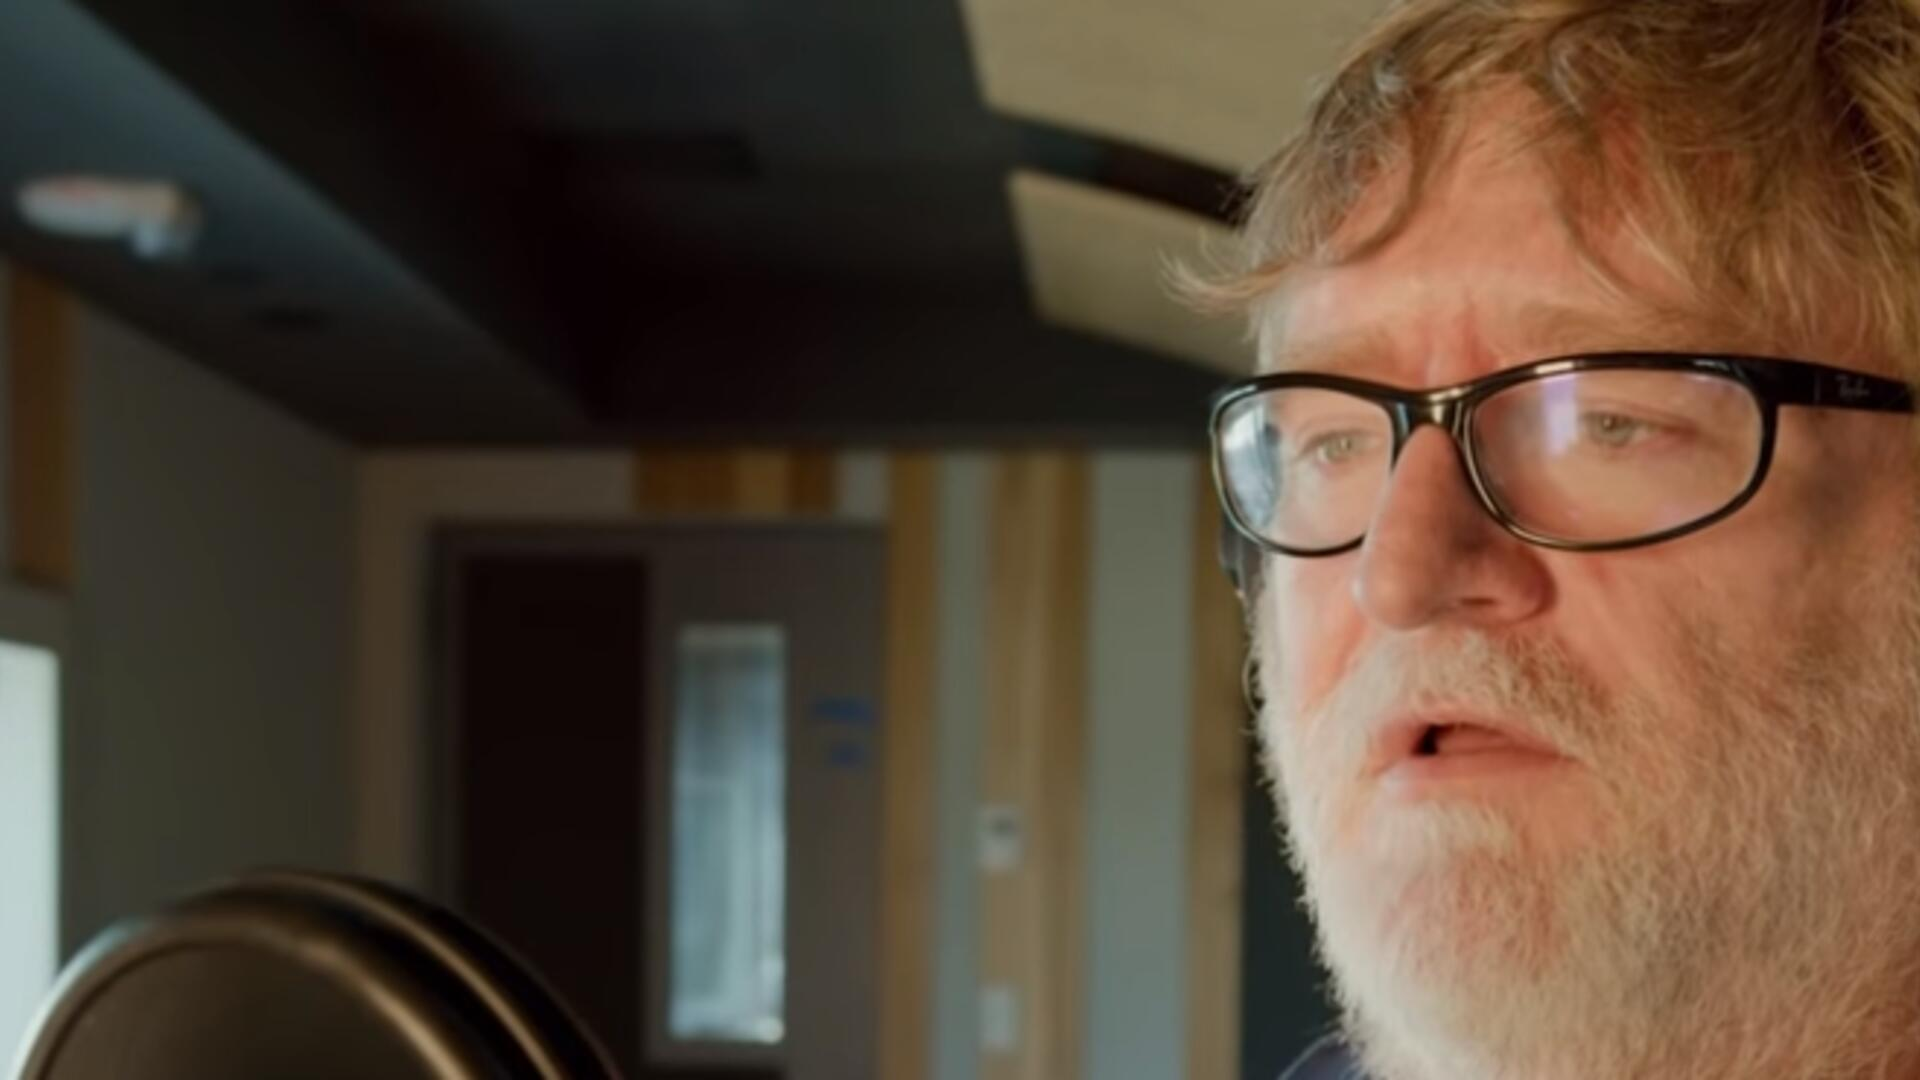 Gabe Newell Makes Half-Life 3 Joke as he Lends His Voice to a New Dota 2 Announcer Pack